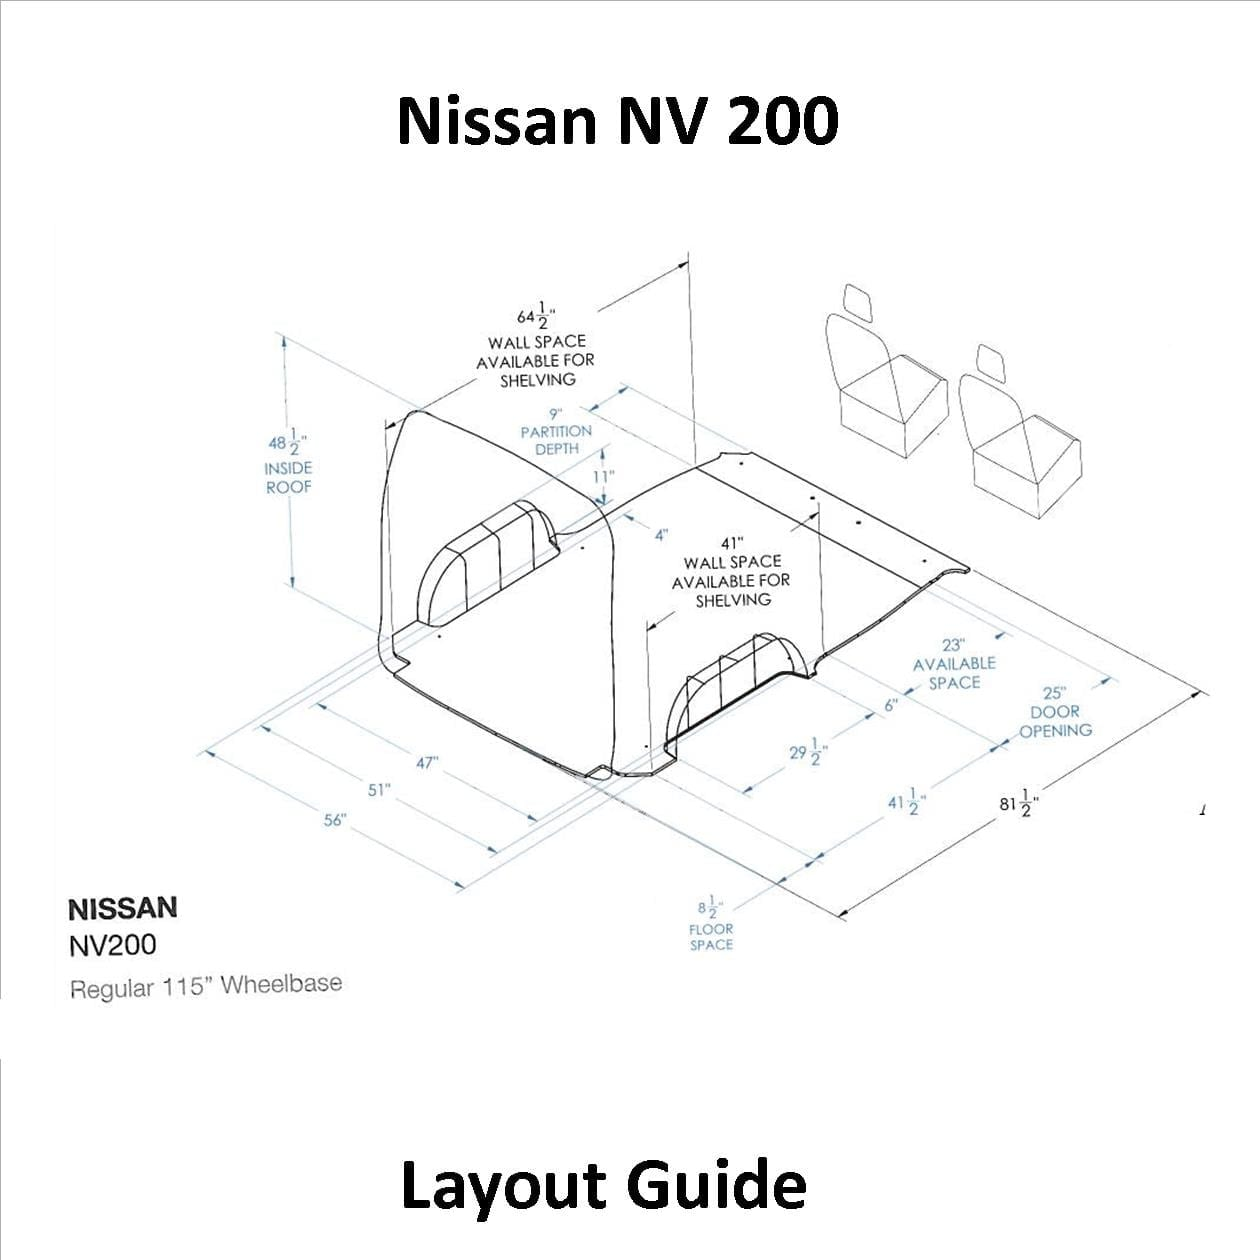 Vehicle Layout Guides